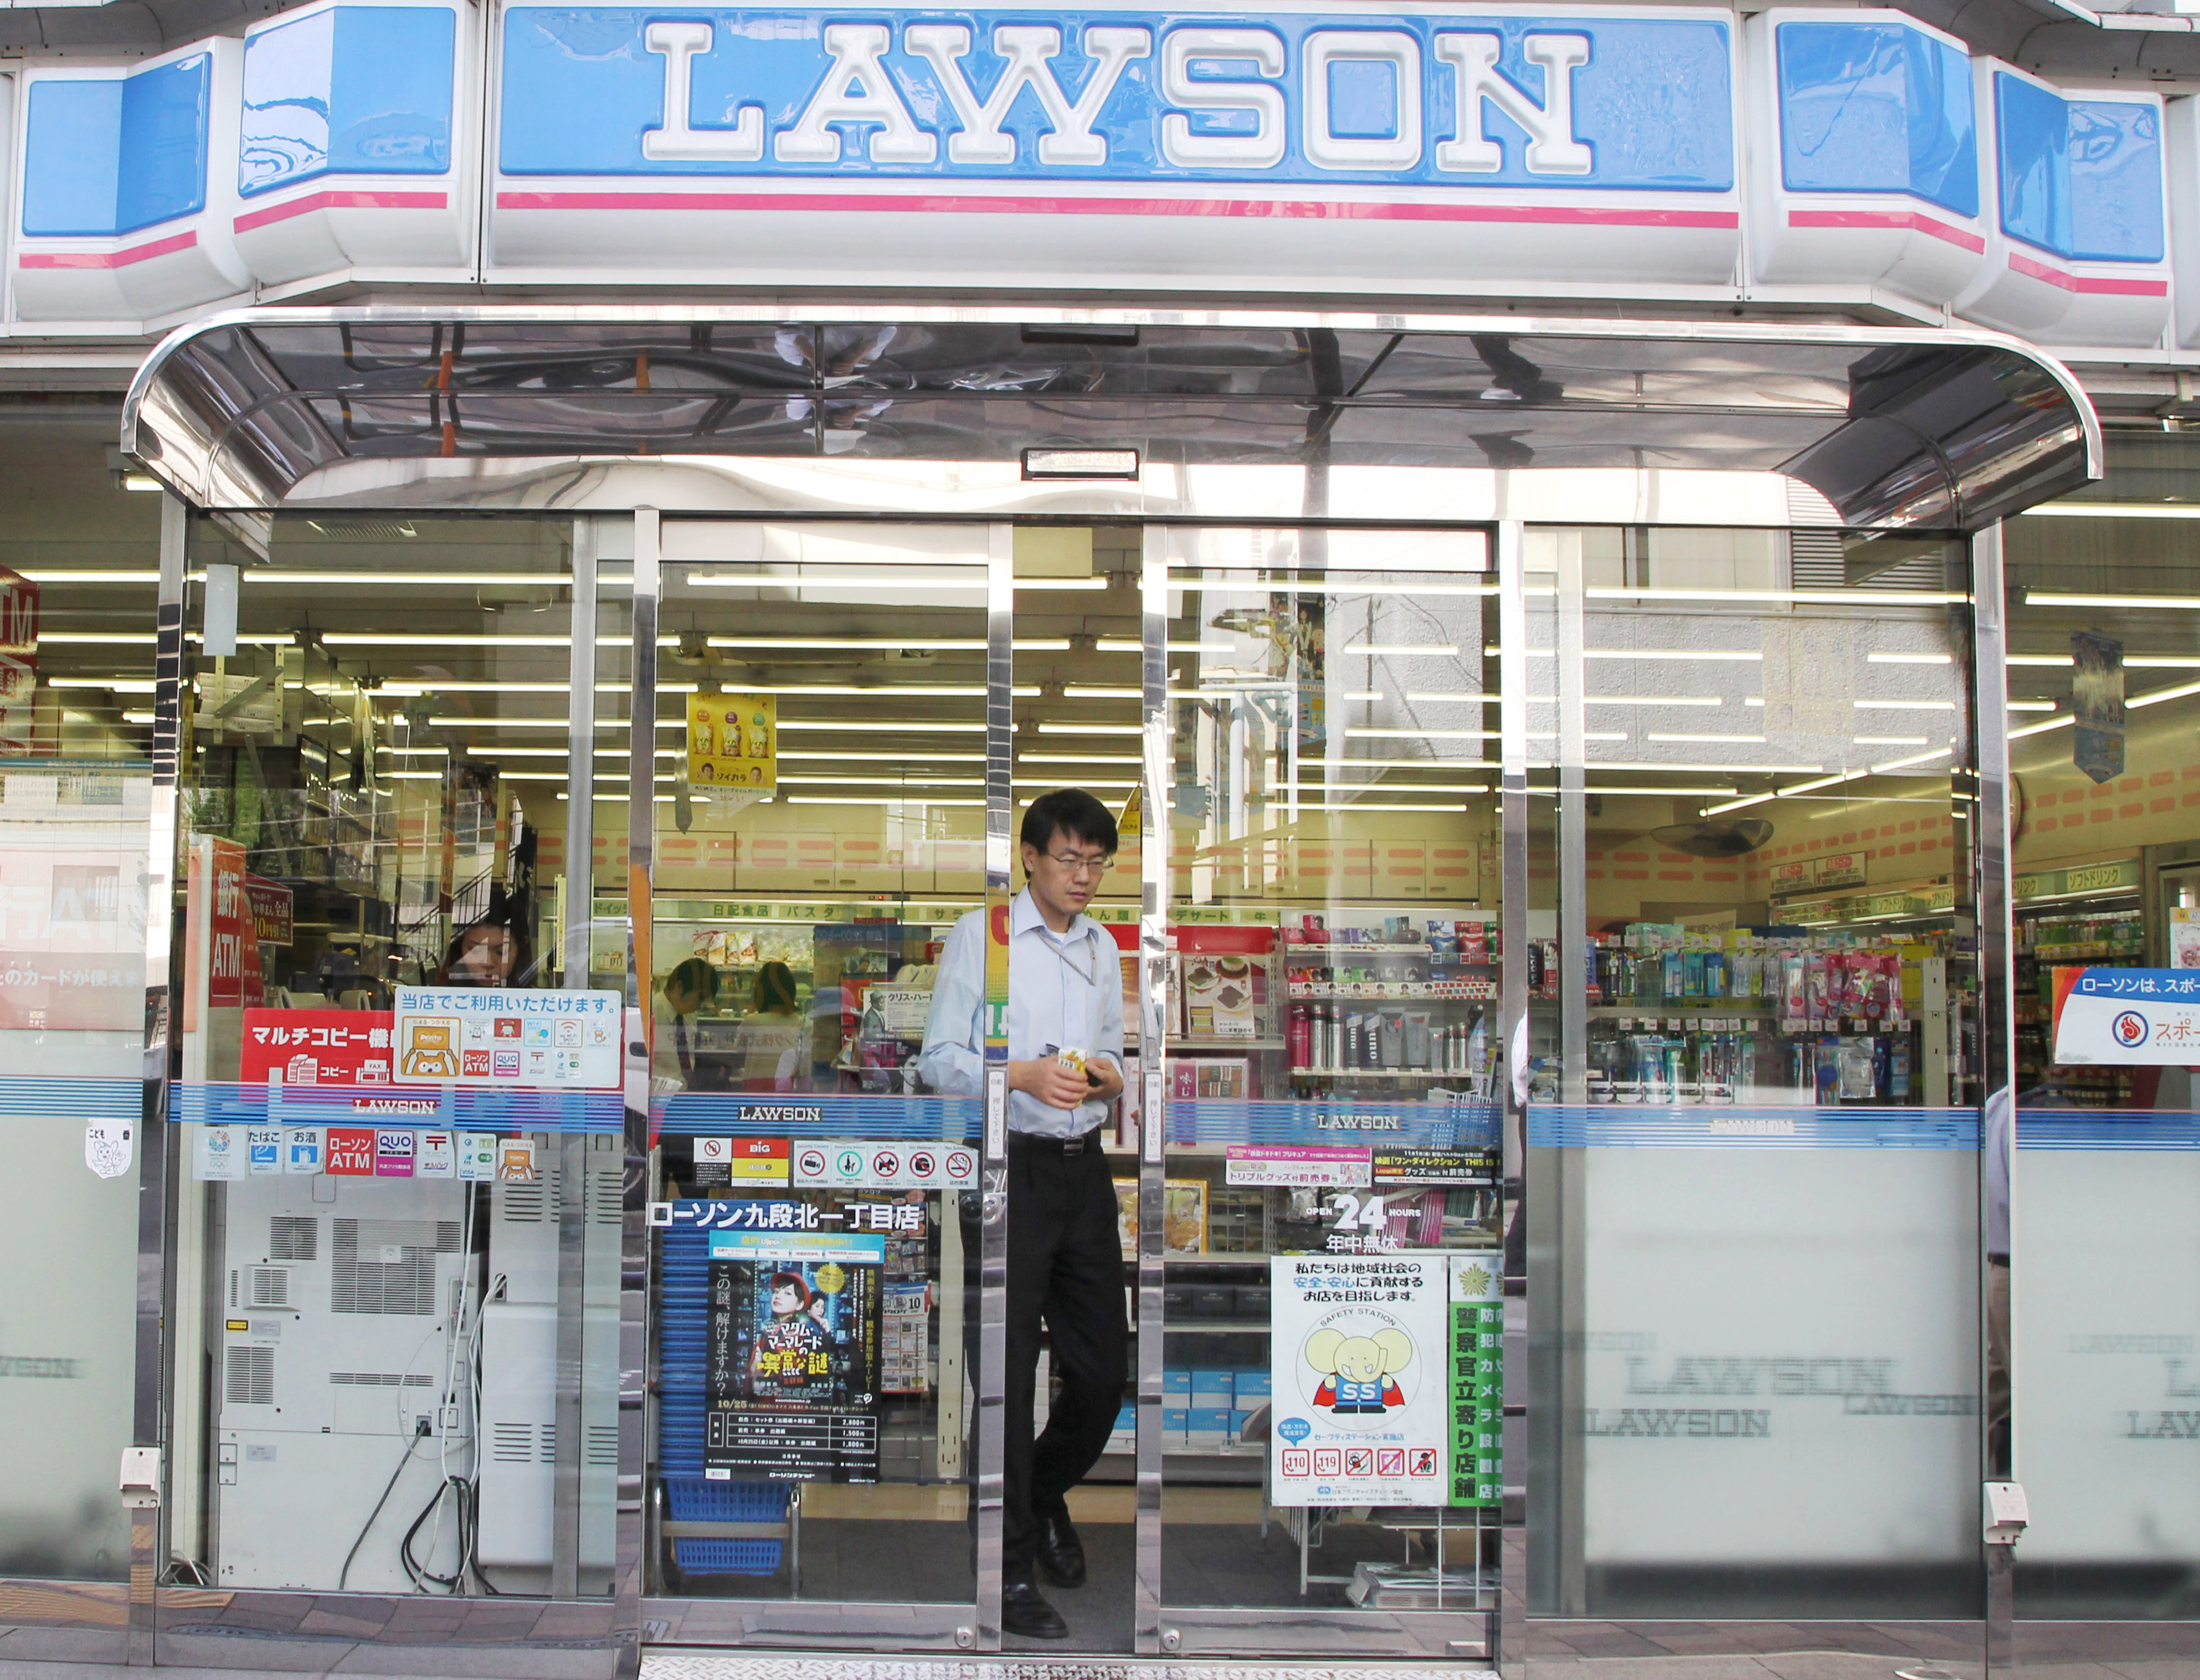 General Images Of Lawson Inc. Convenience Stores as Company Reports Earnings